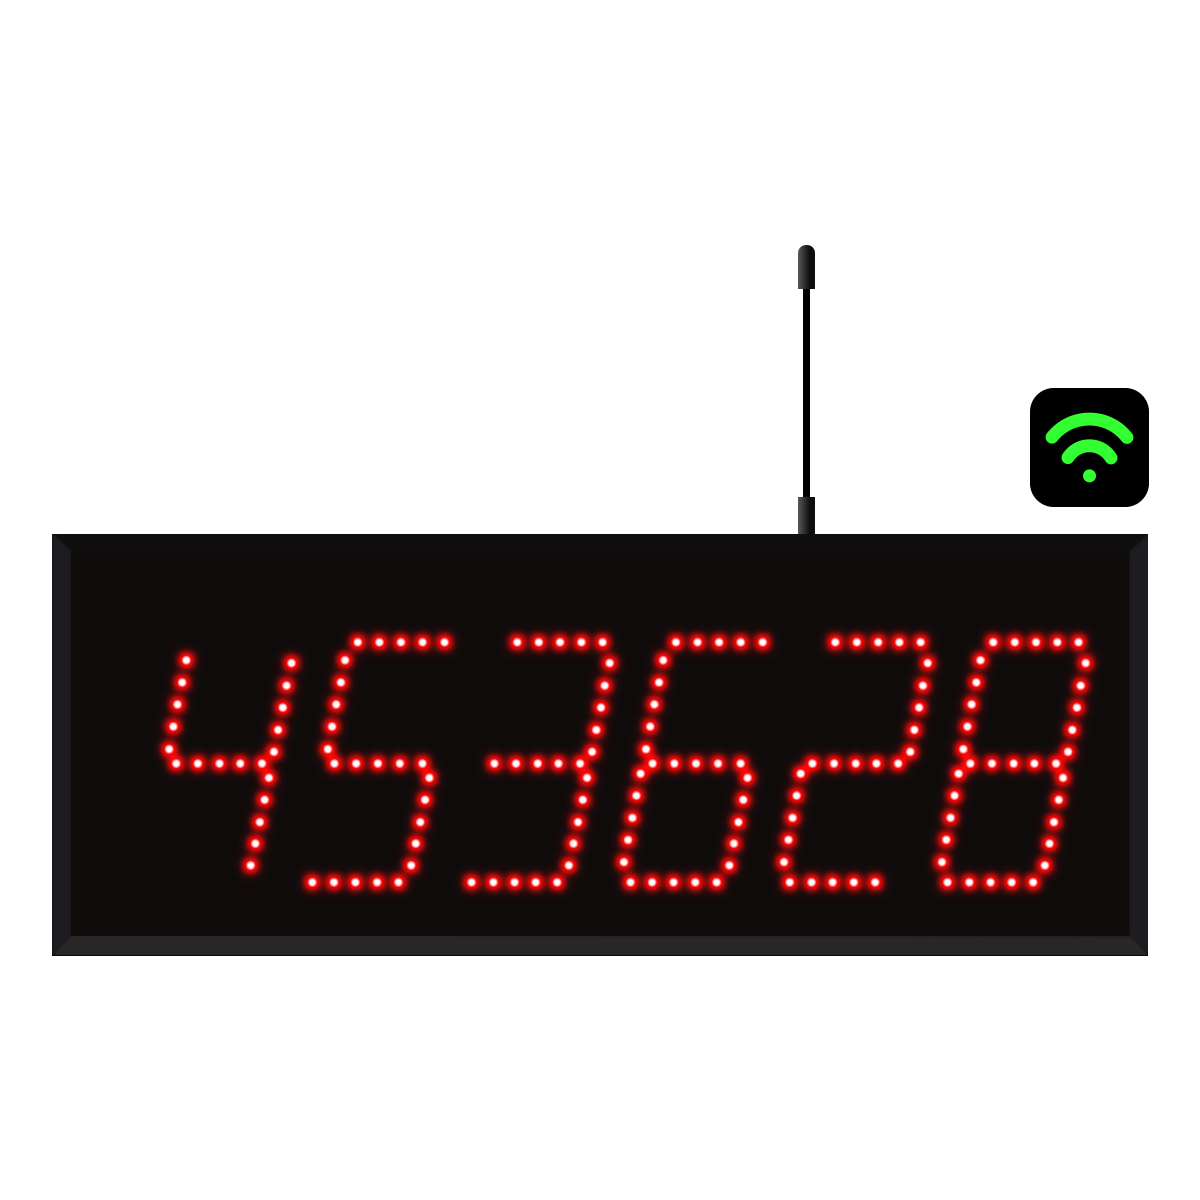 6-Digit WiFi Visual-Pager® Display